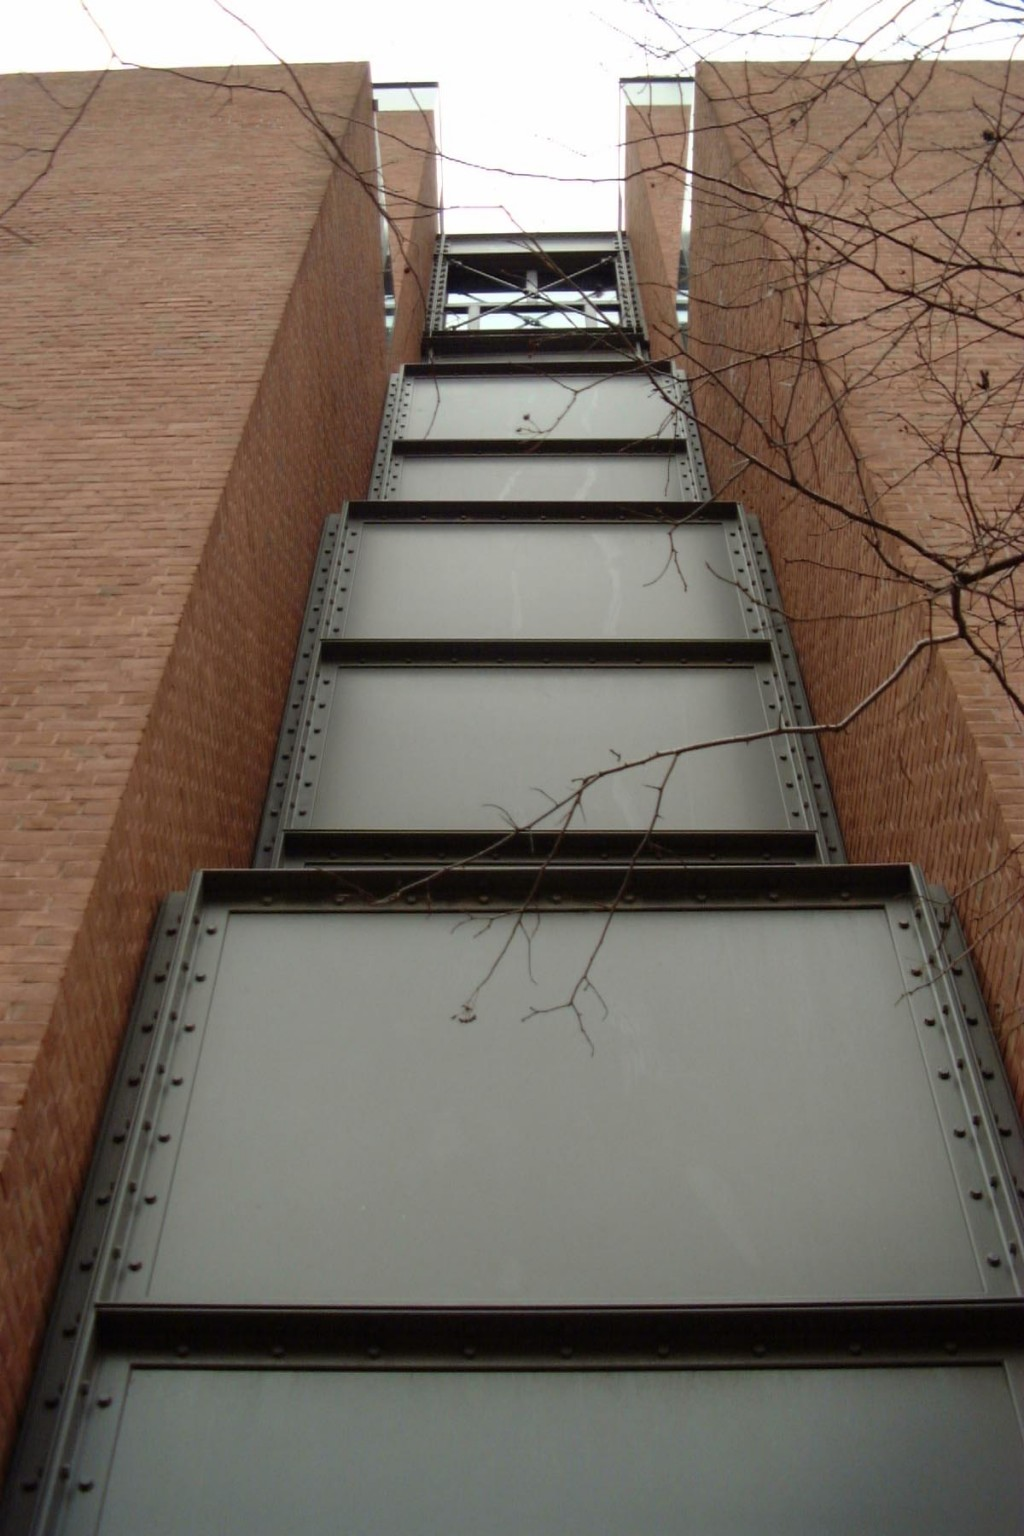 Photograph of exterior wall of the United States Holocaust Memorial Museum. [LCID: wall]